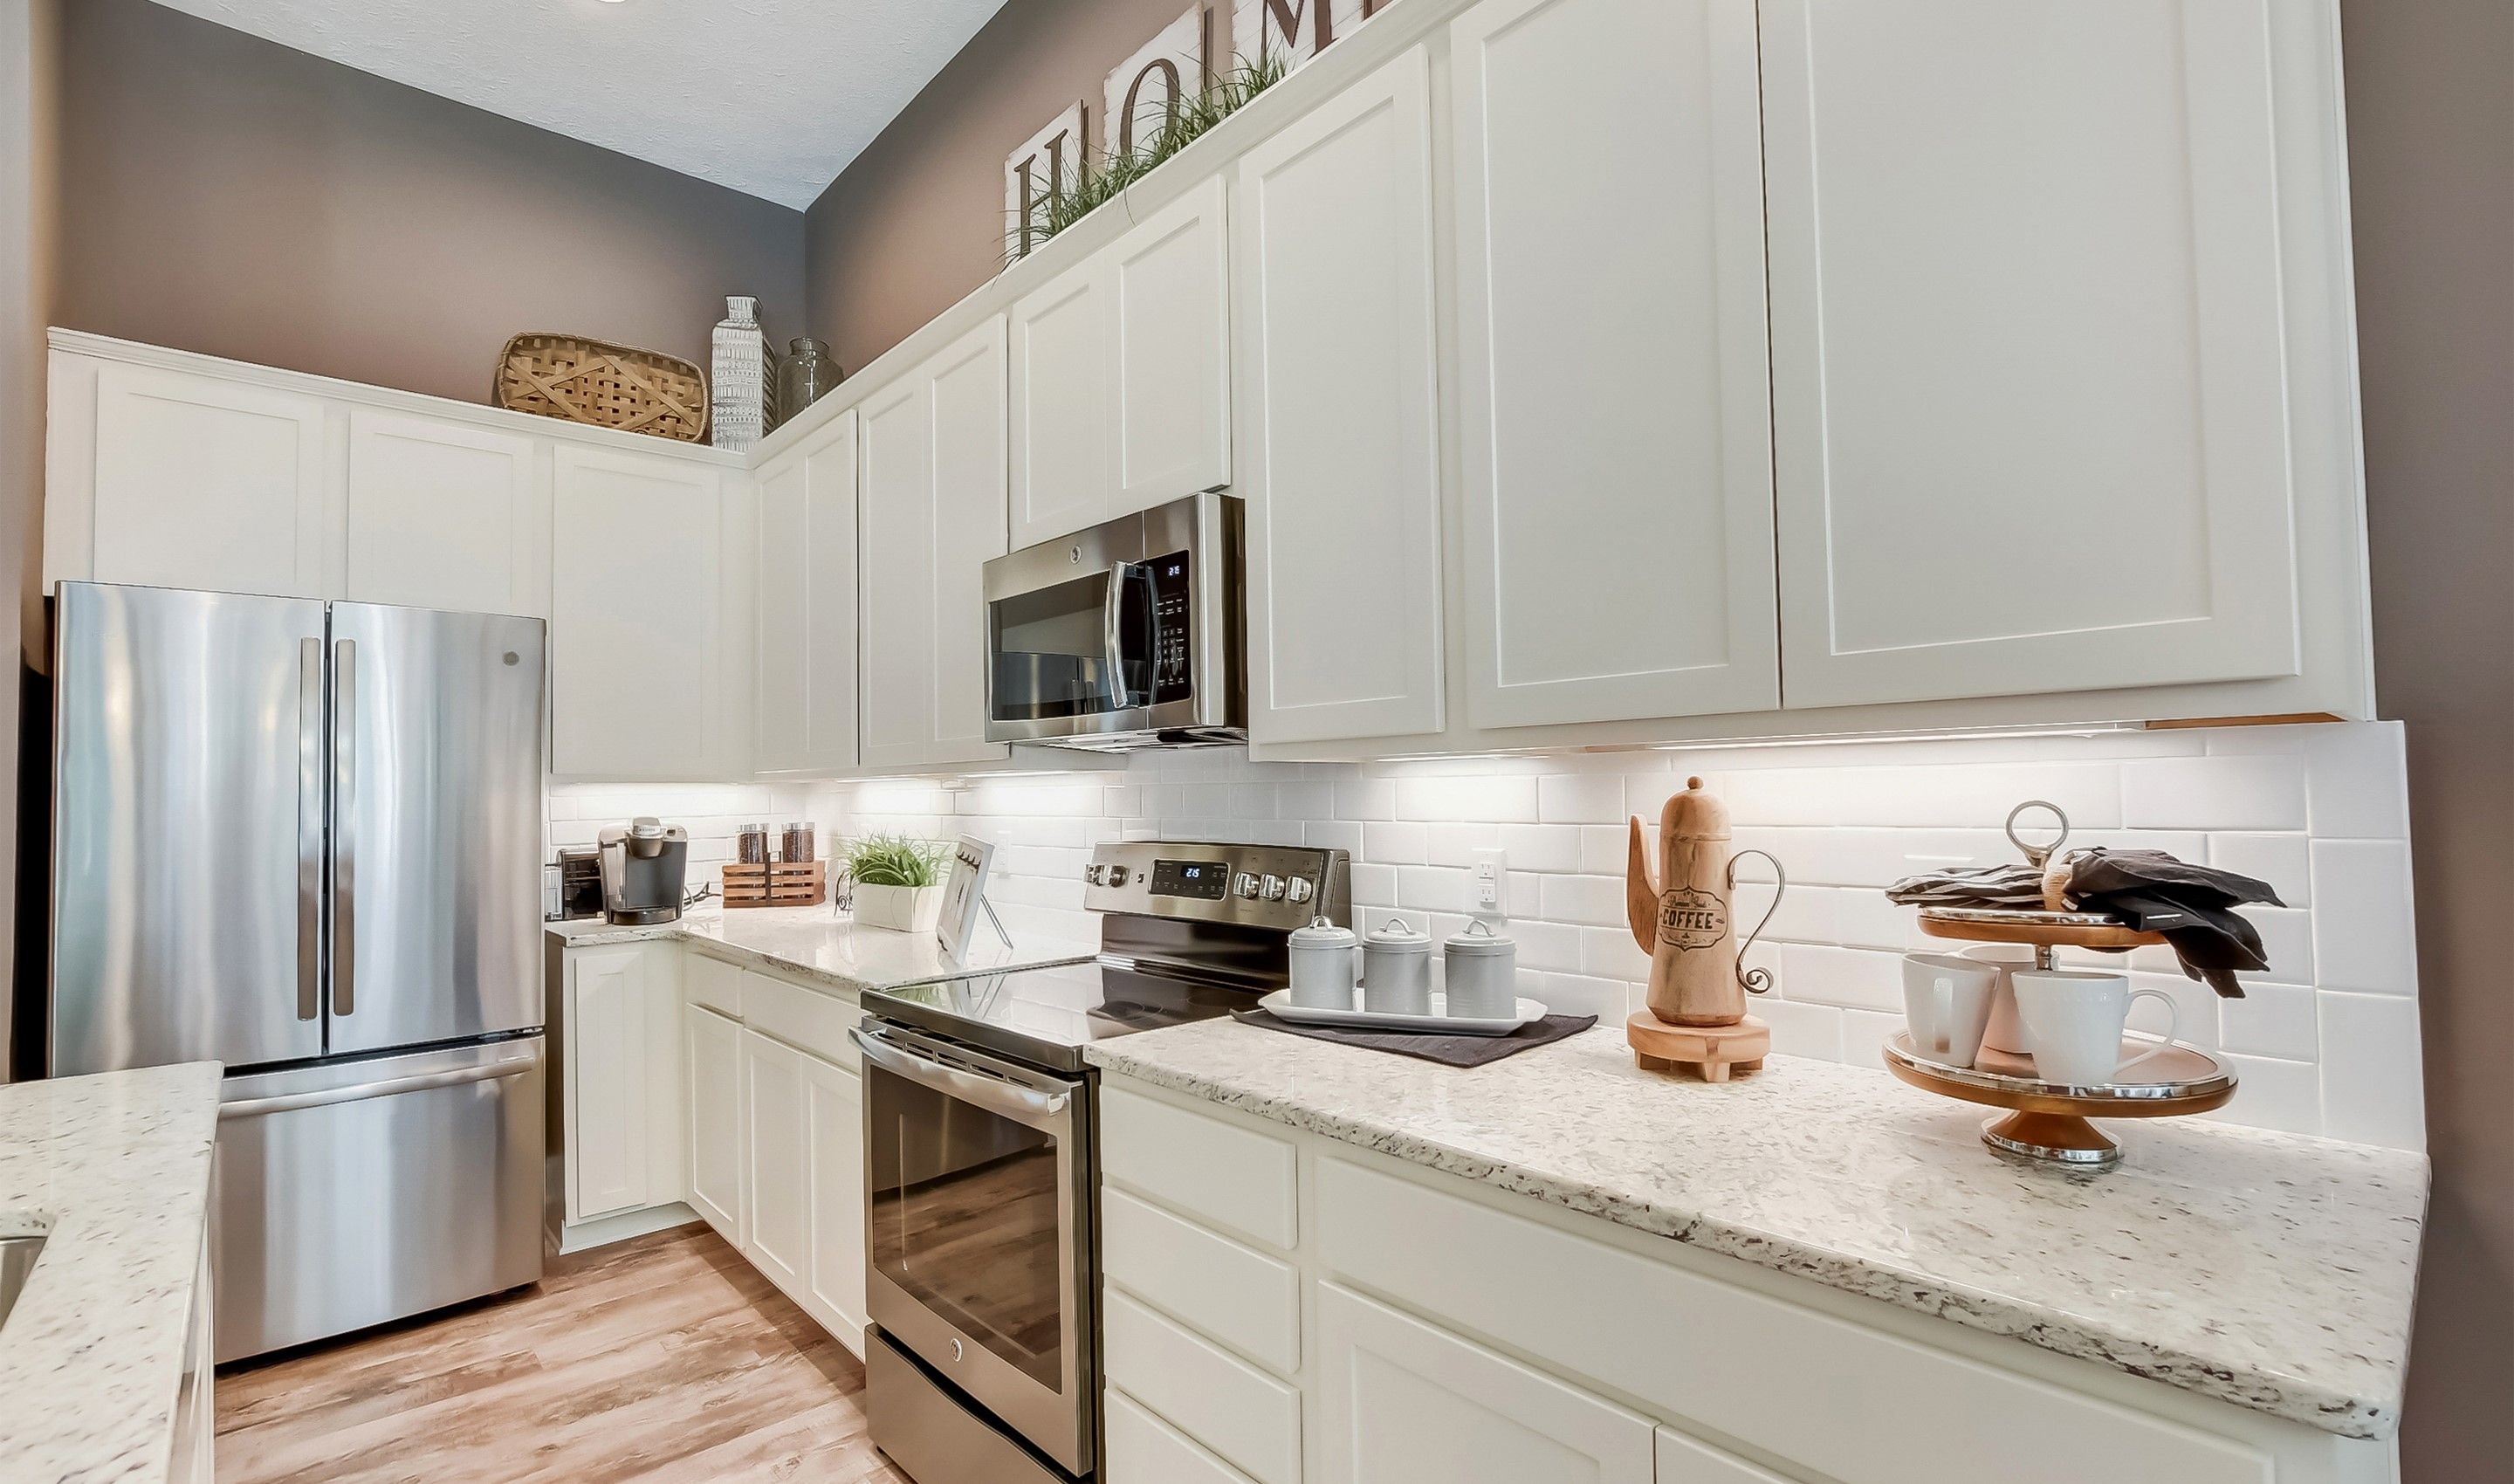 Kitchen featured in the Bedford By K. Hovnanian's® Four Seasons in Cleveland, OH